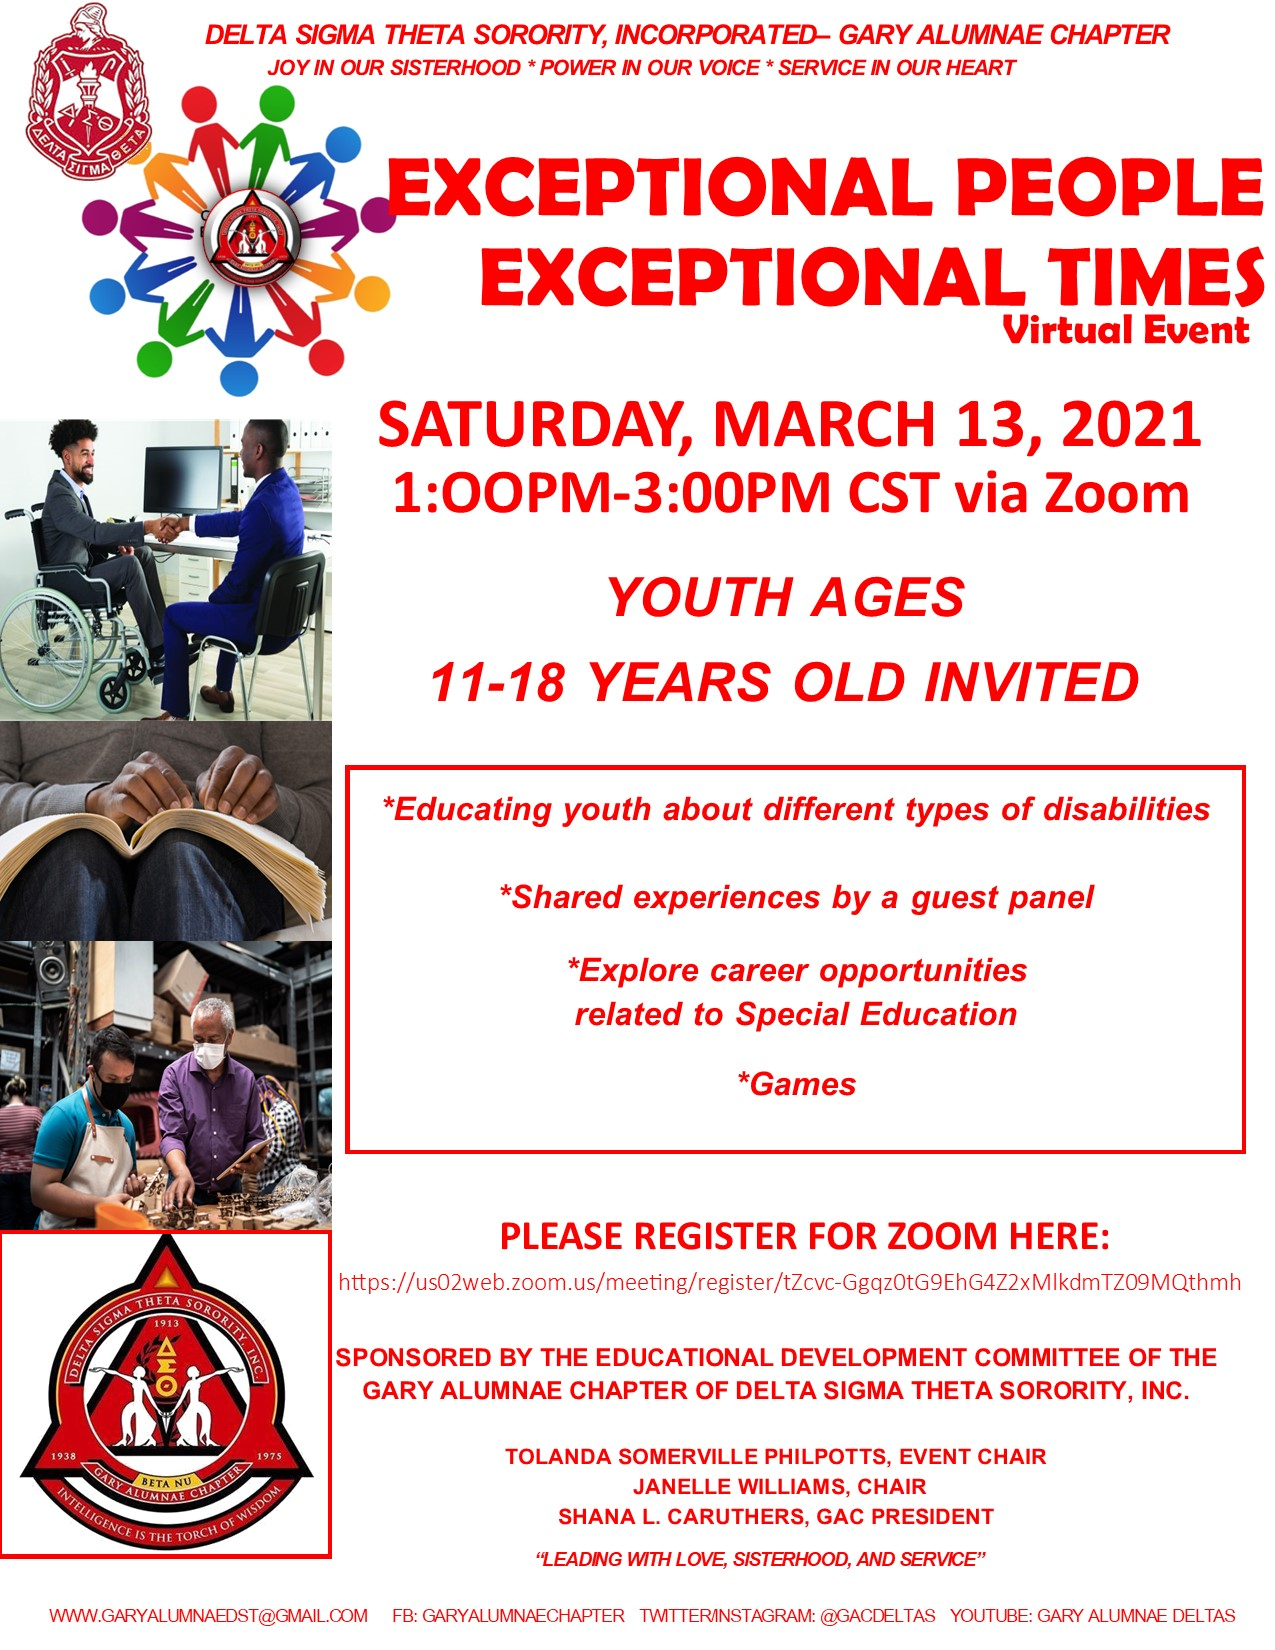 EXCEPTIONAL PEOPLE EXCEPTIONAL TIMES (Please click on the flyer to register)